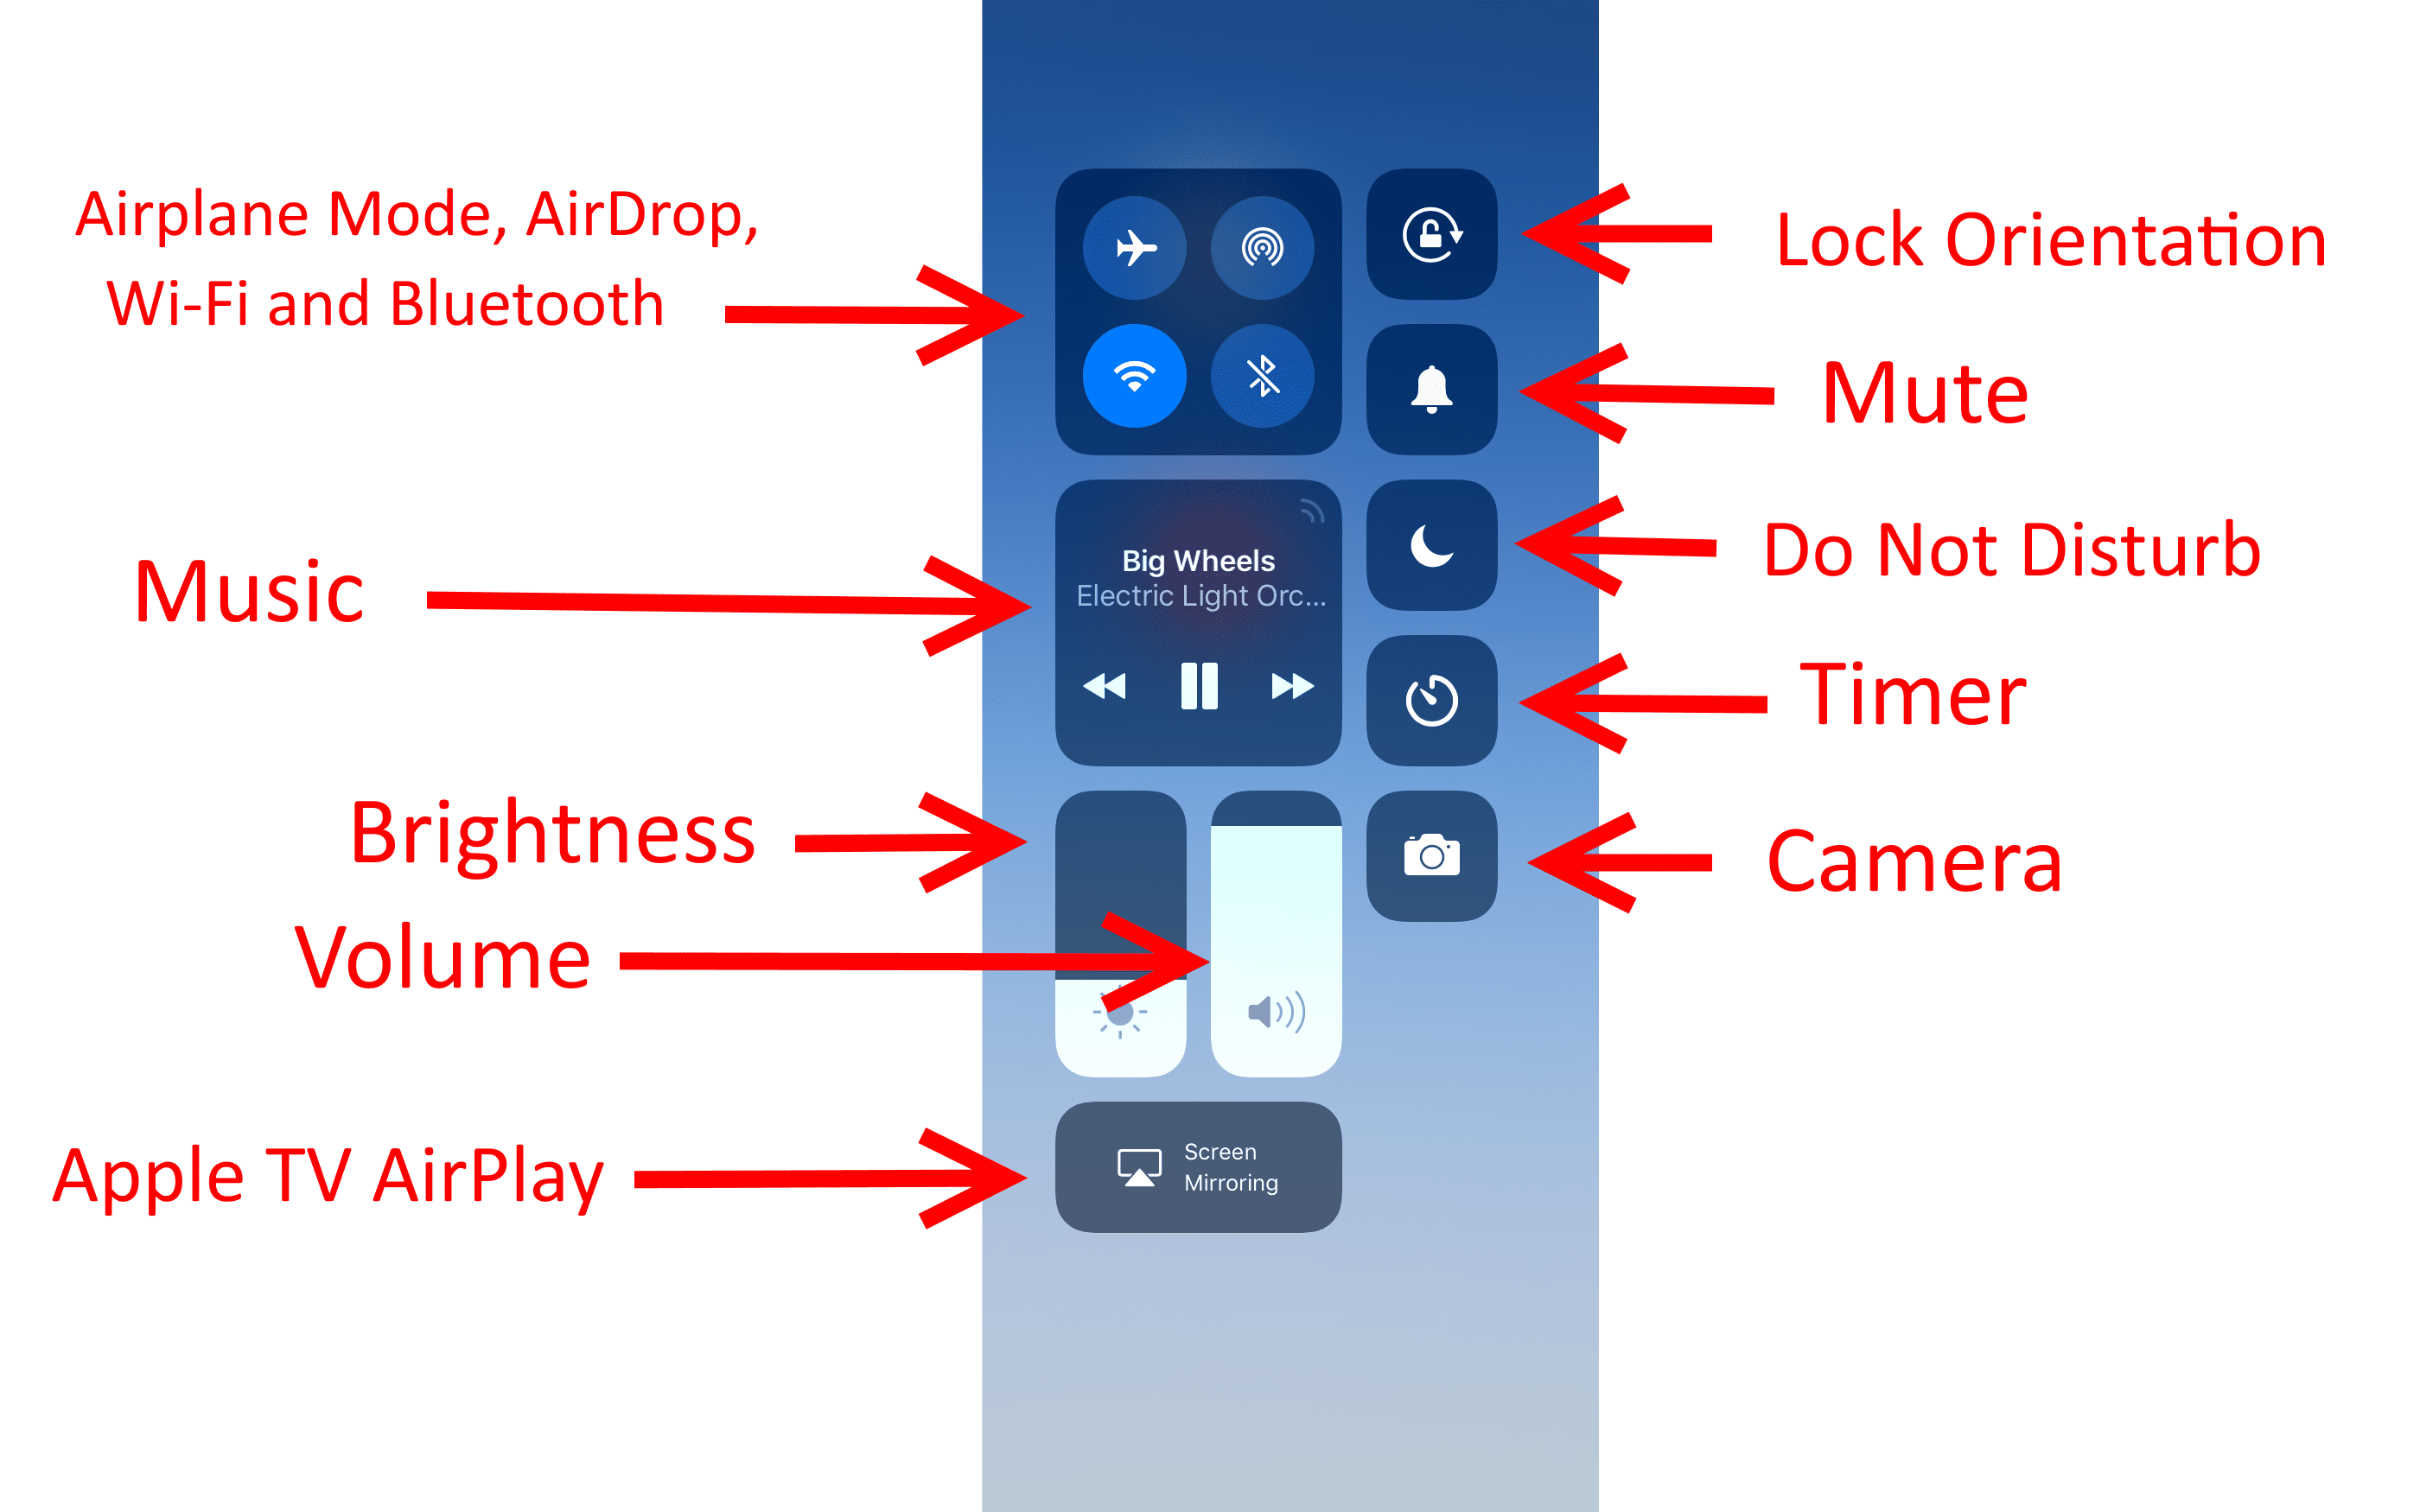 How to Use AirPlay on the iPad